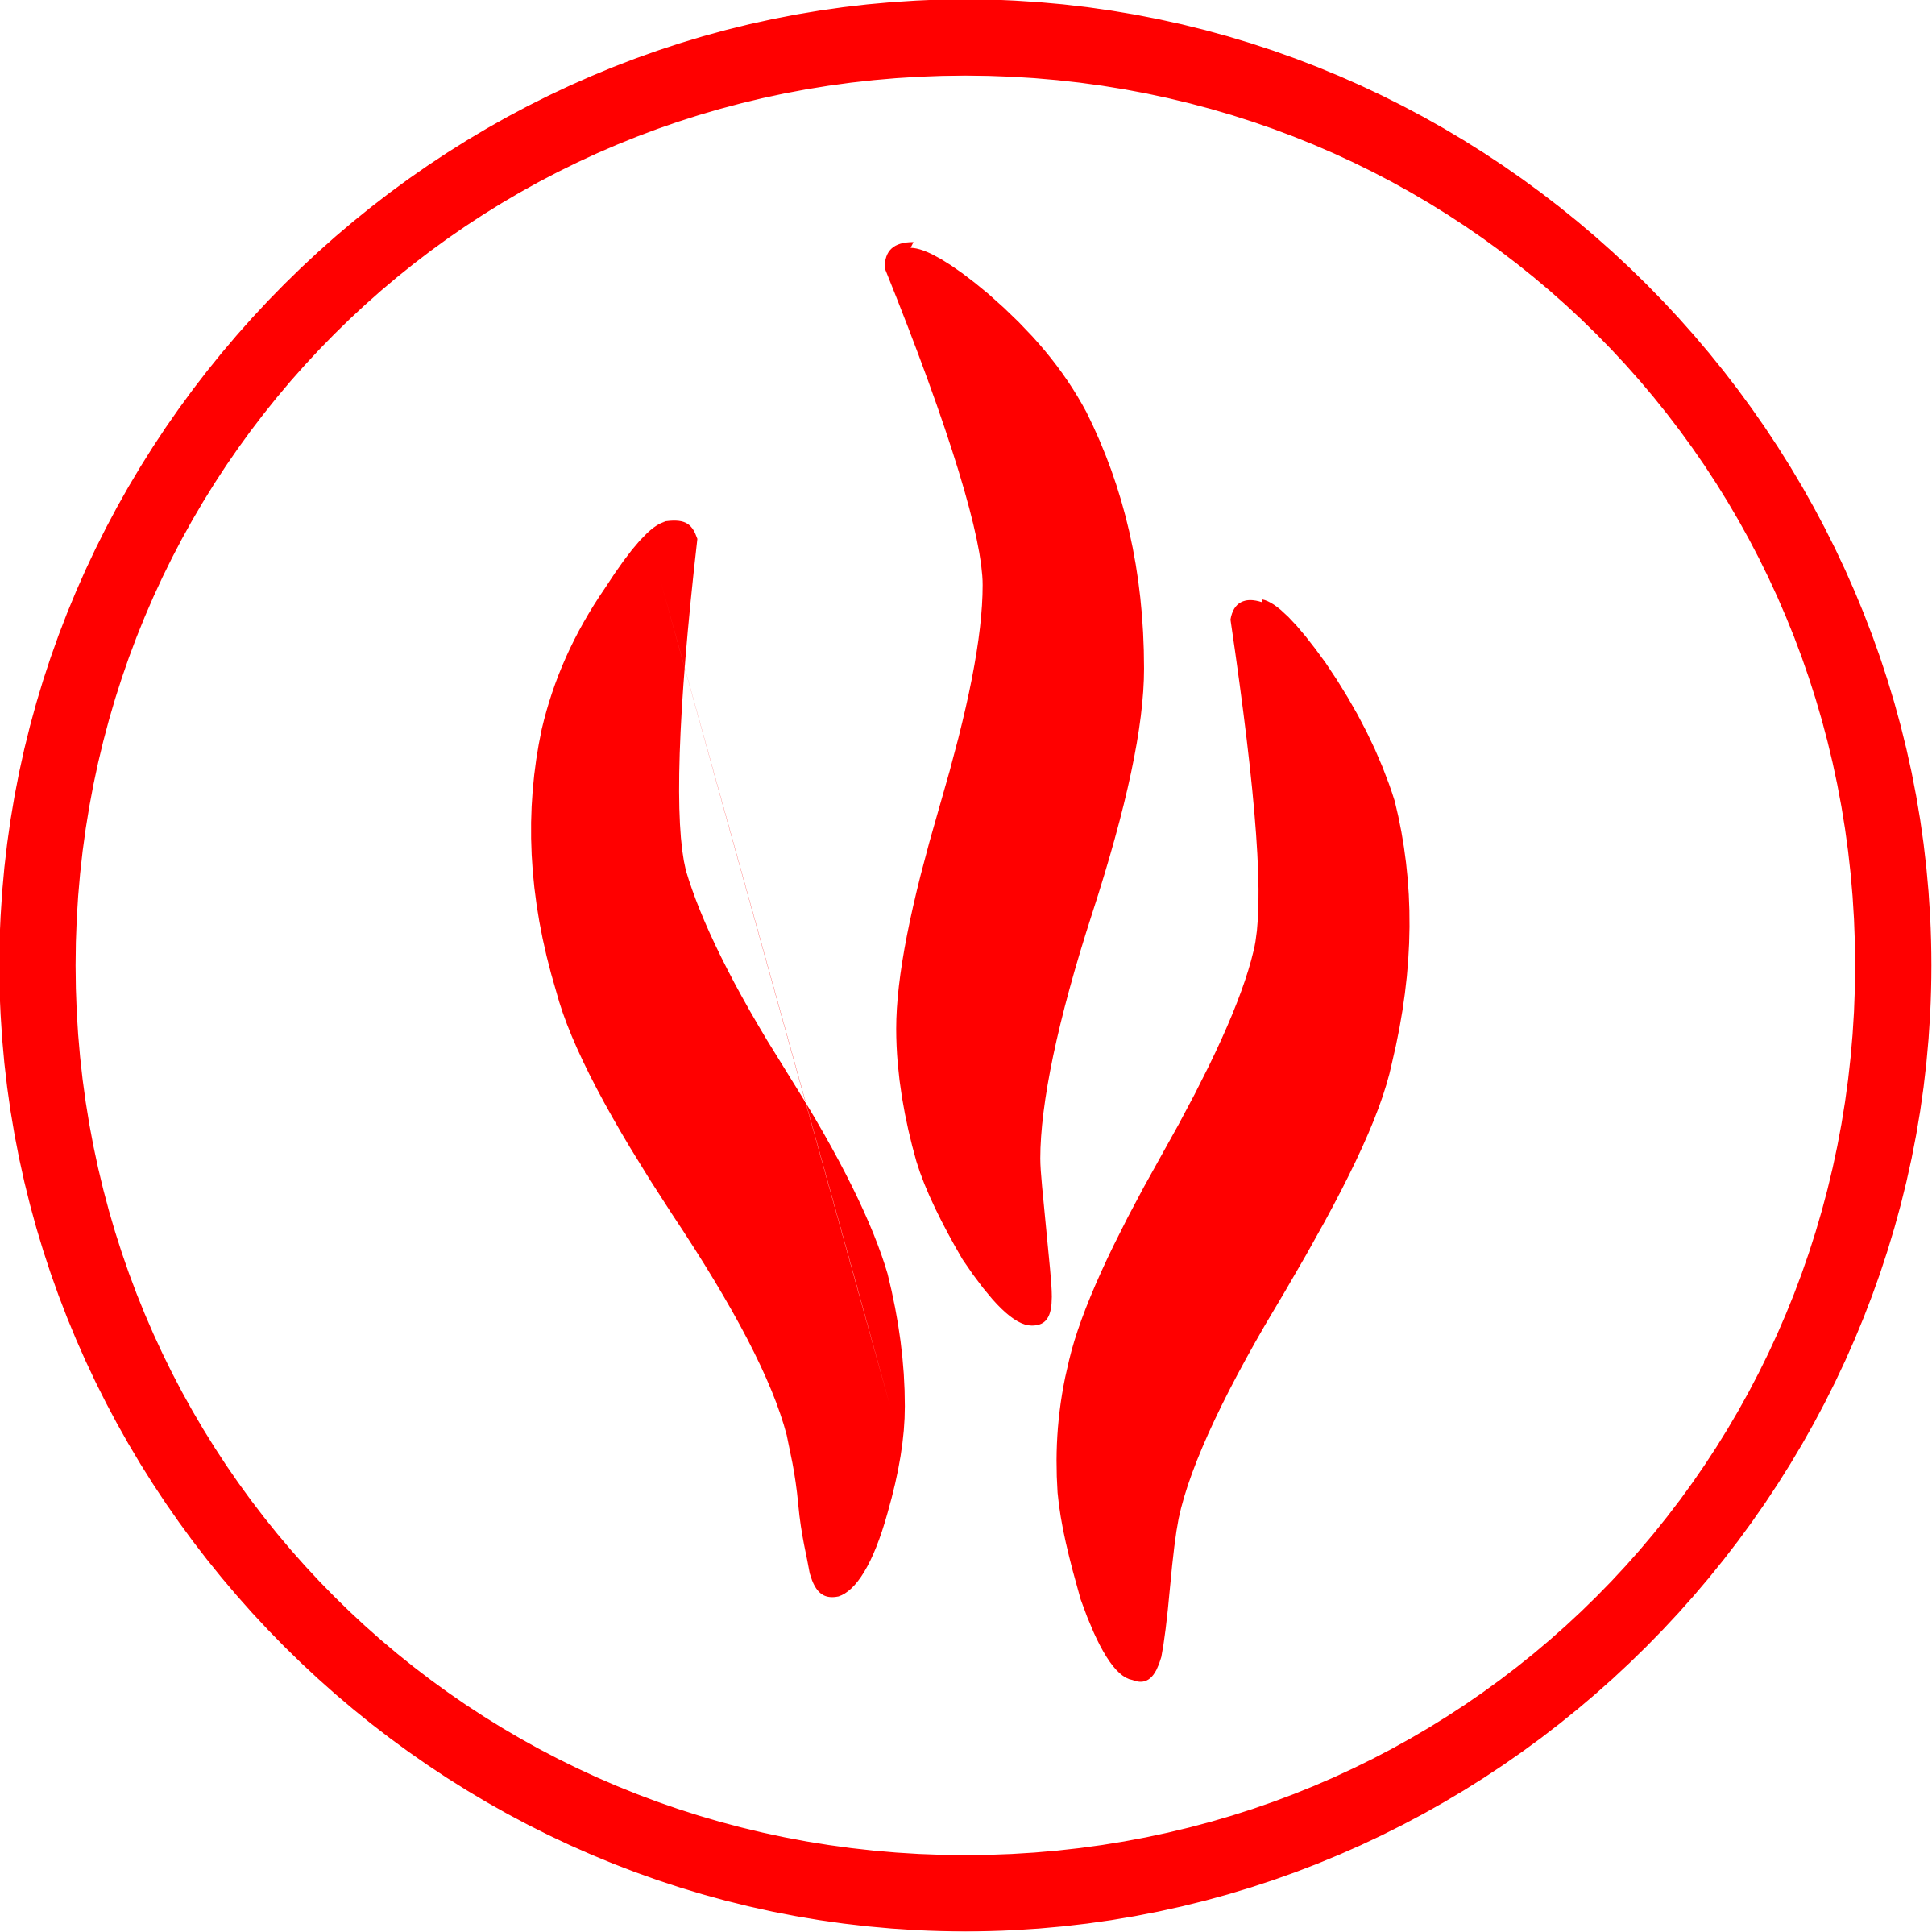 Fire department icon by pnx